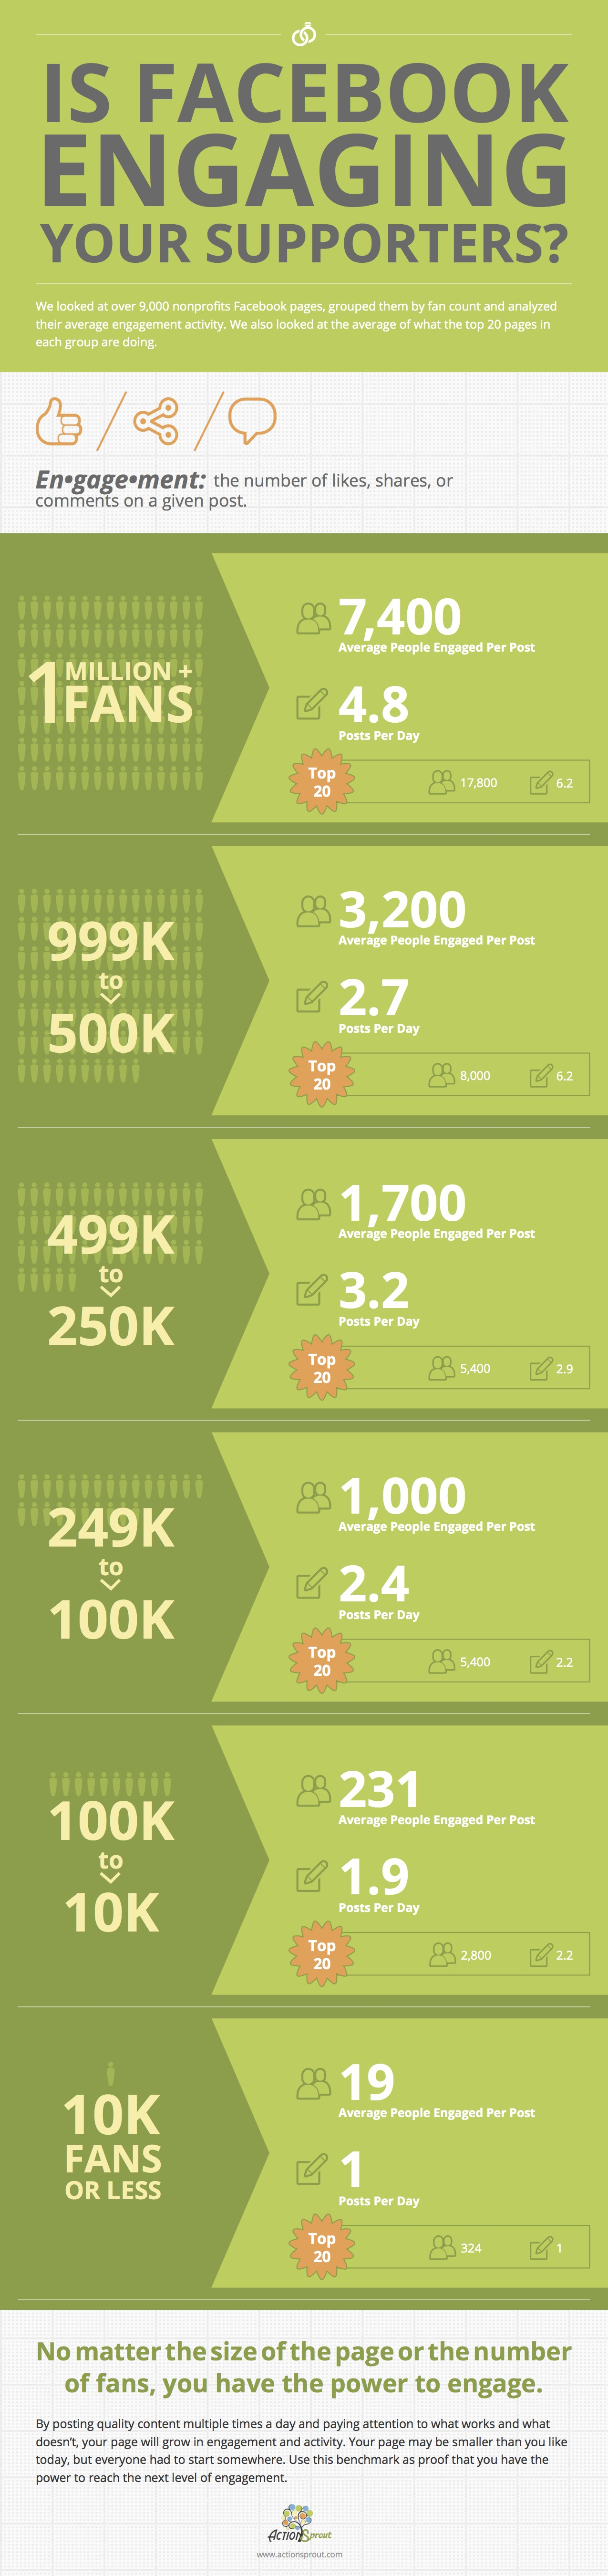 powerful-facebook-engagement-infographic-for-nonprofits_54b98a592aed0